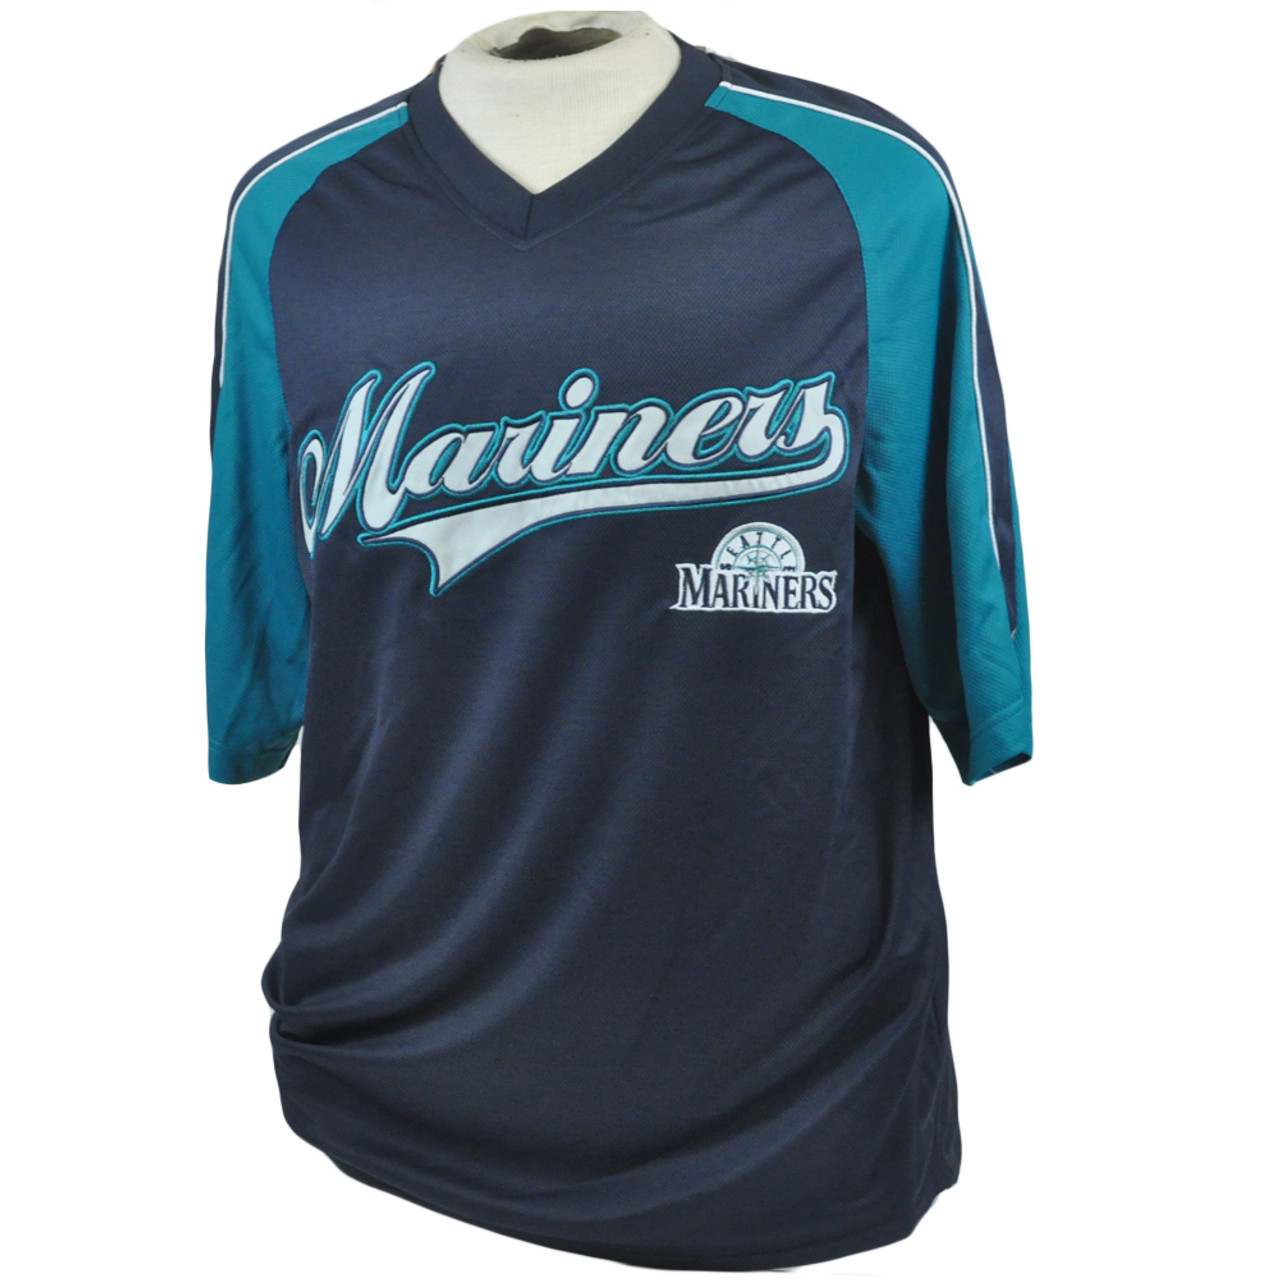 best loved 34f2f 320b4 MLB Seattle Mariners True Fan Lightweight Licensed Authentic Jersey Shirt  Large